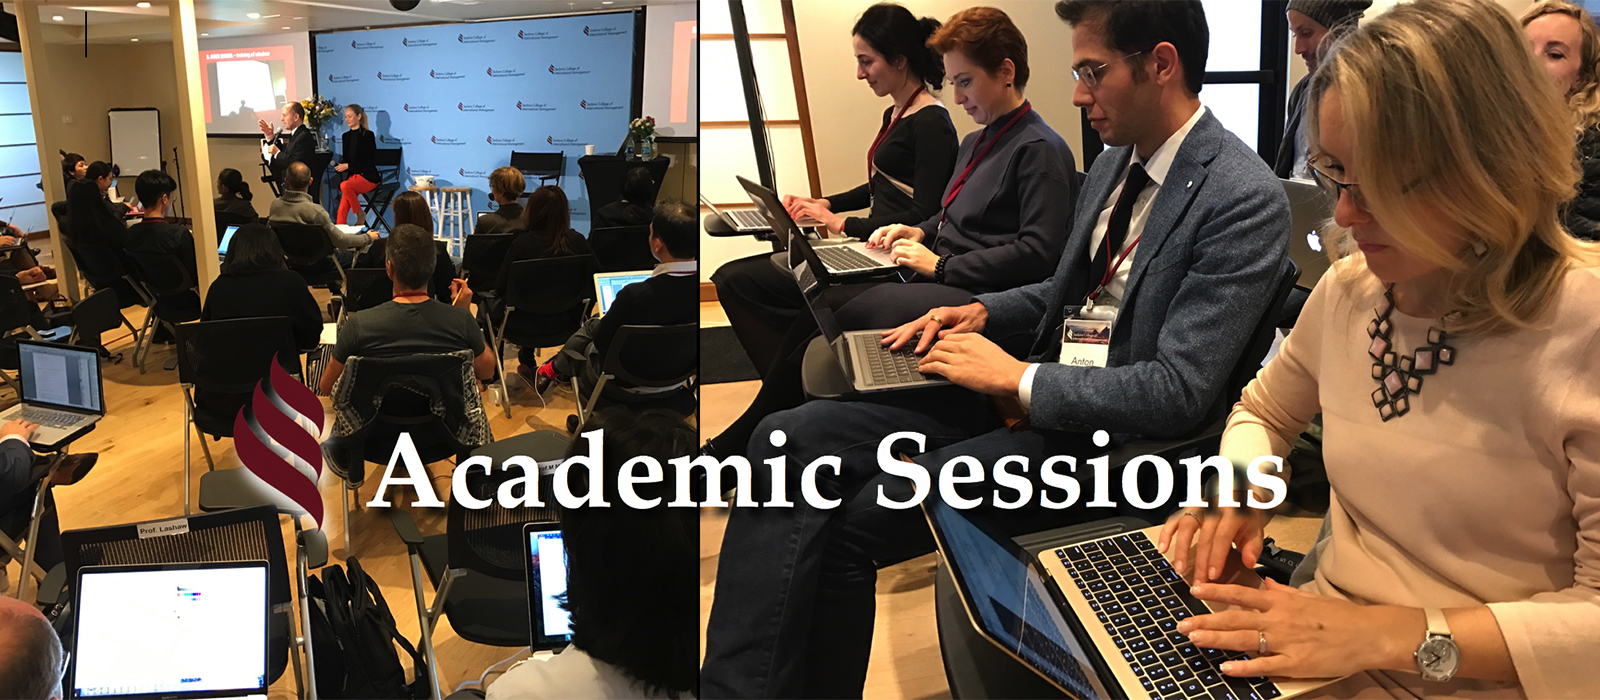 Academic Sessions Slider 2